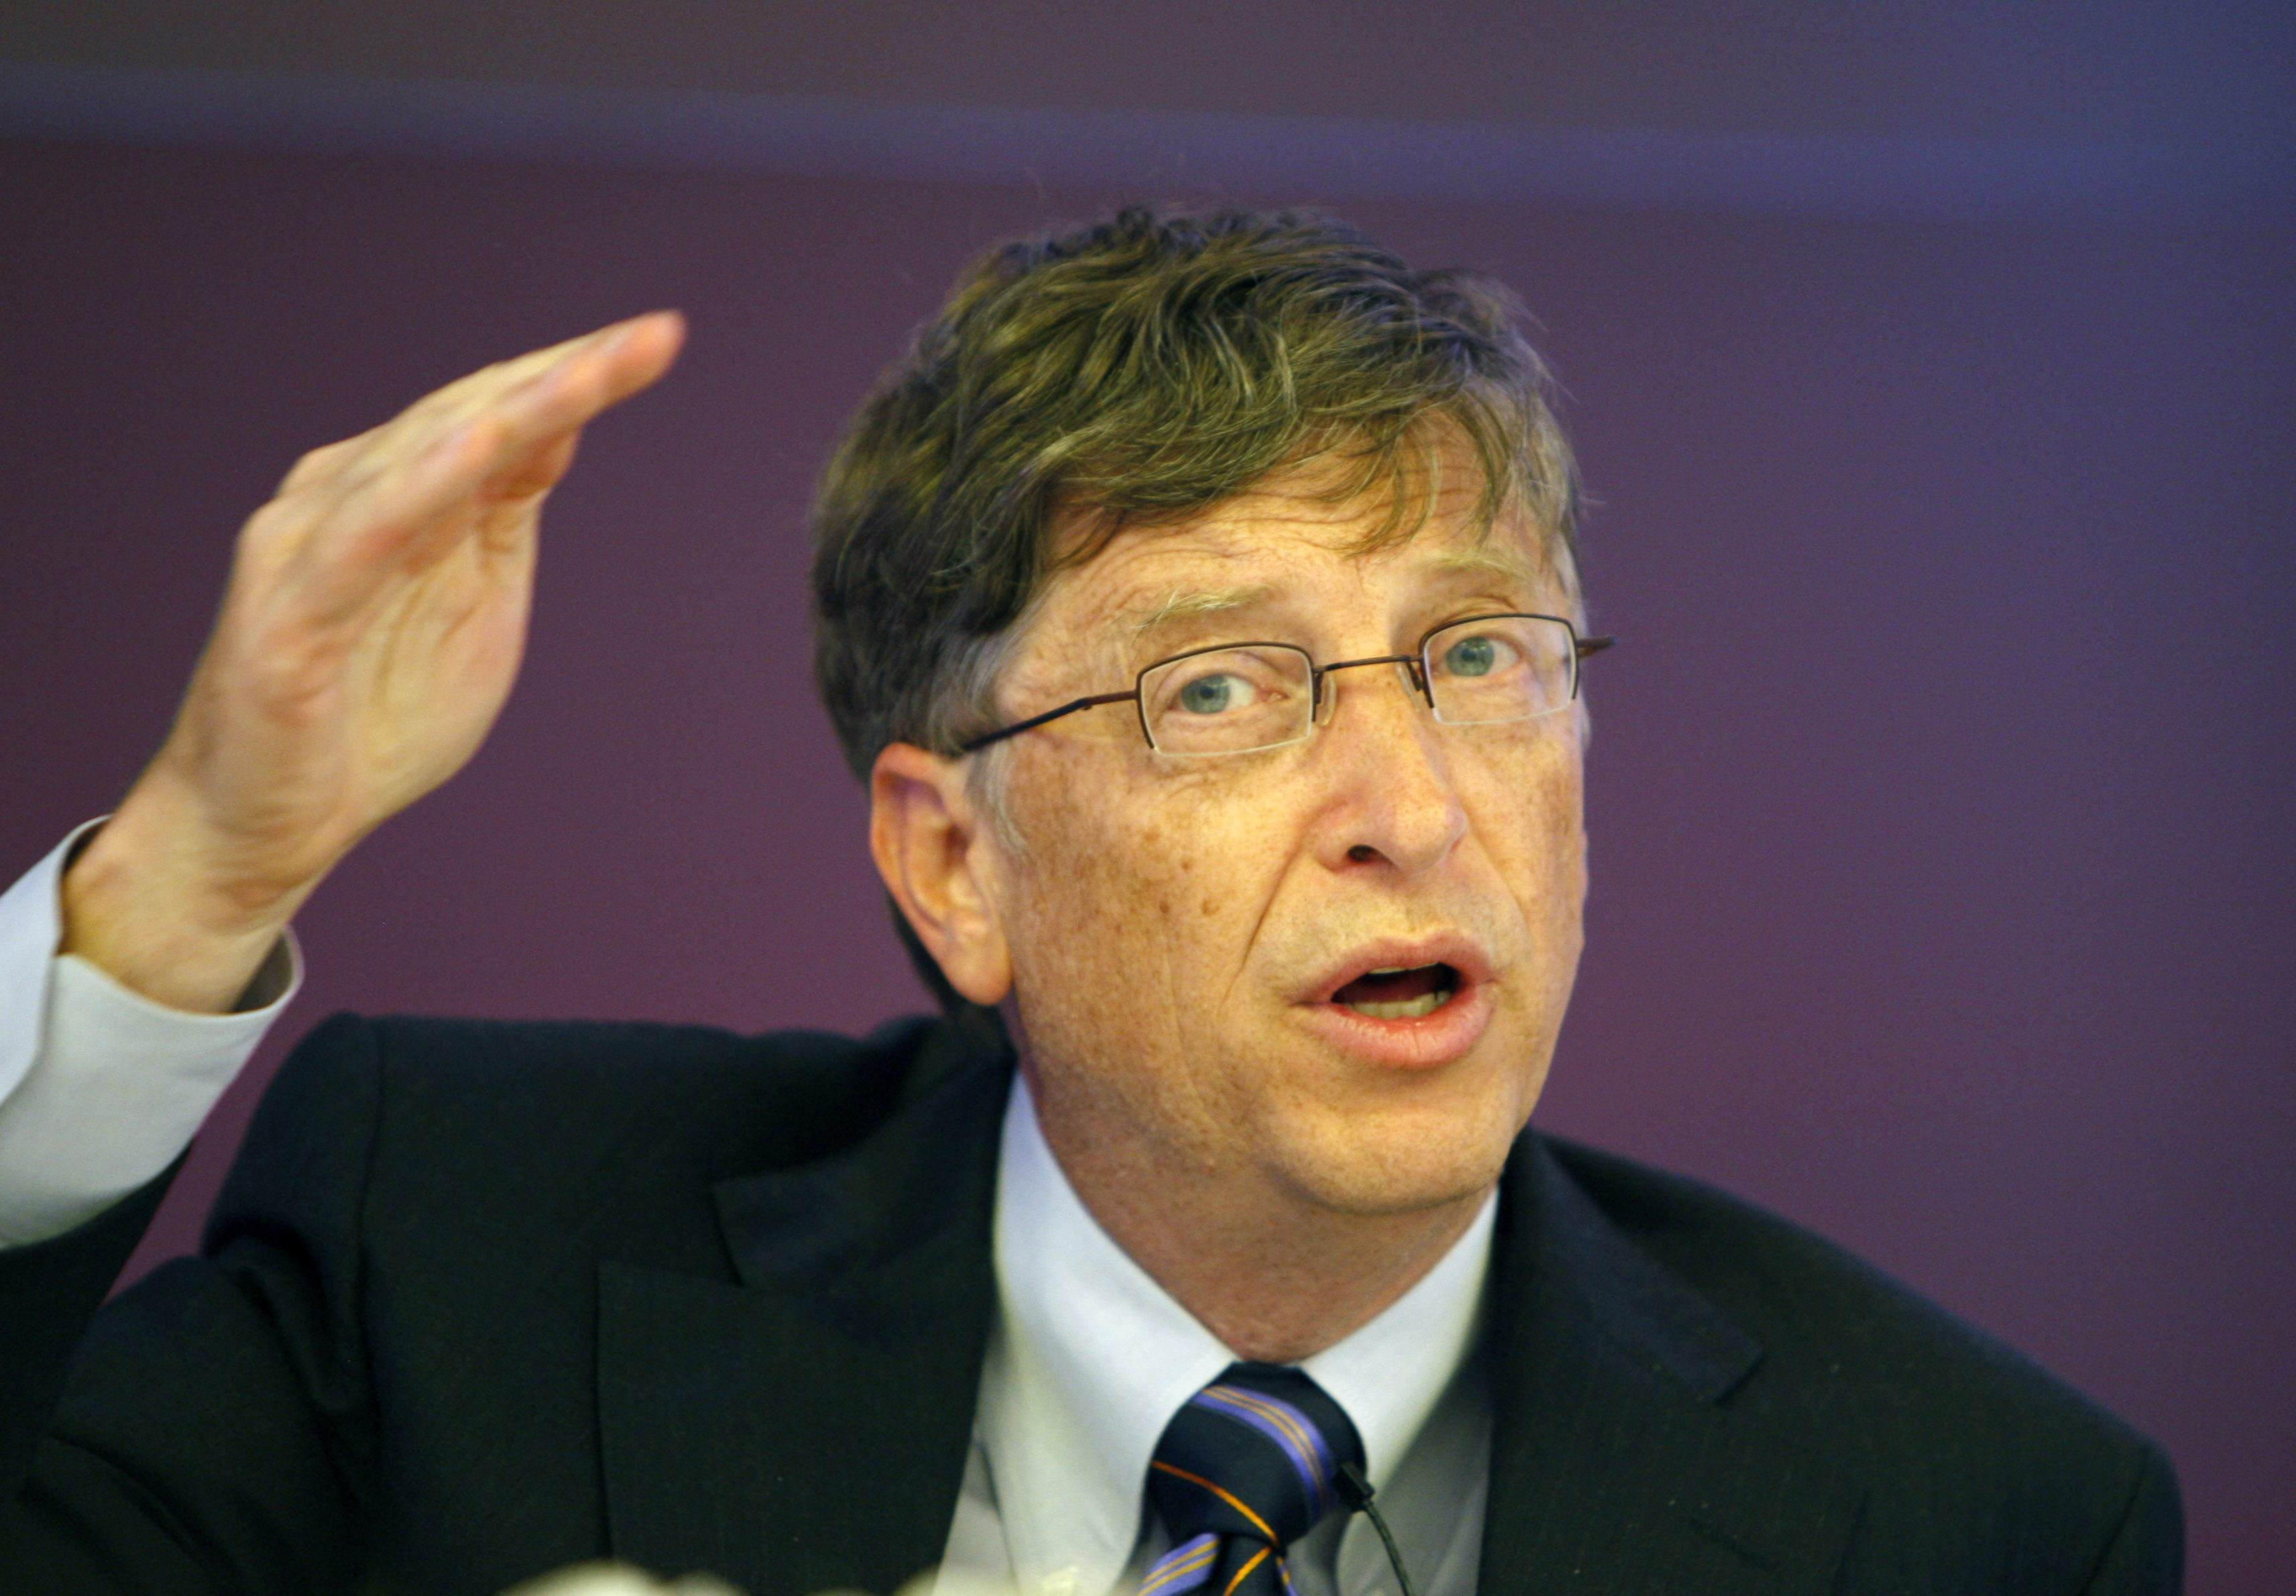 case study of bill gates Watch video  four years ago bill gates predicted polio would be eradicated by 2020 progress shows the last case may be seen as early as this year.